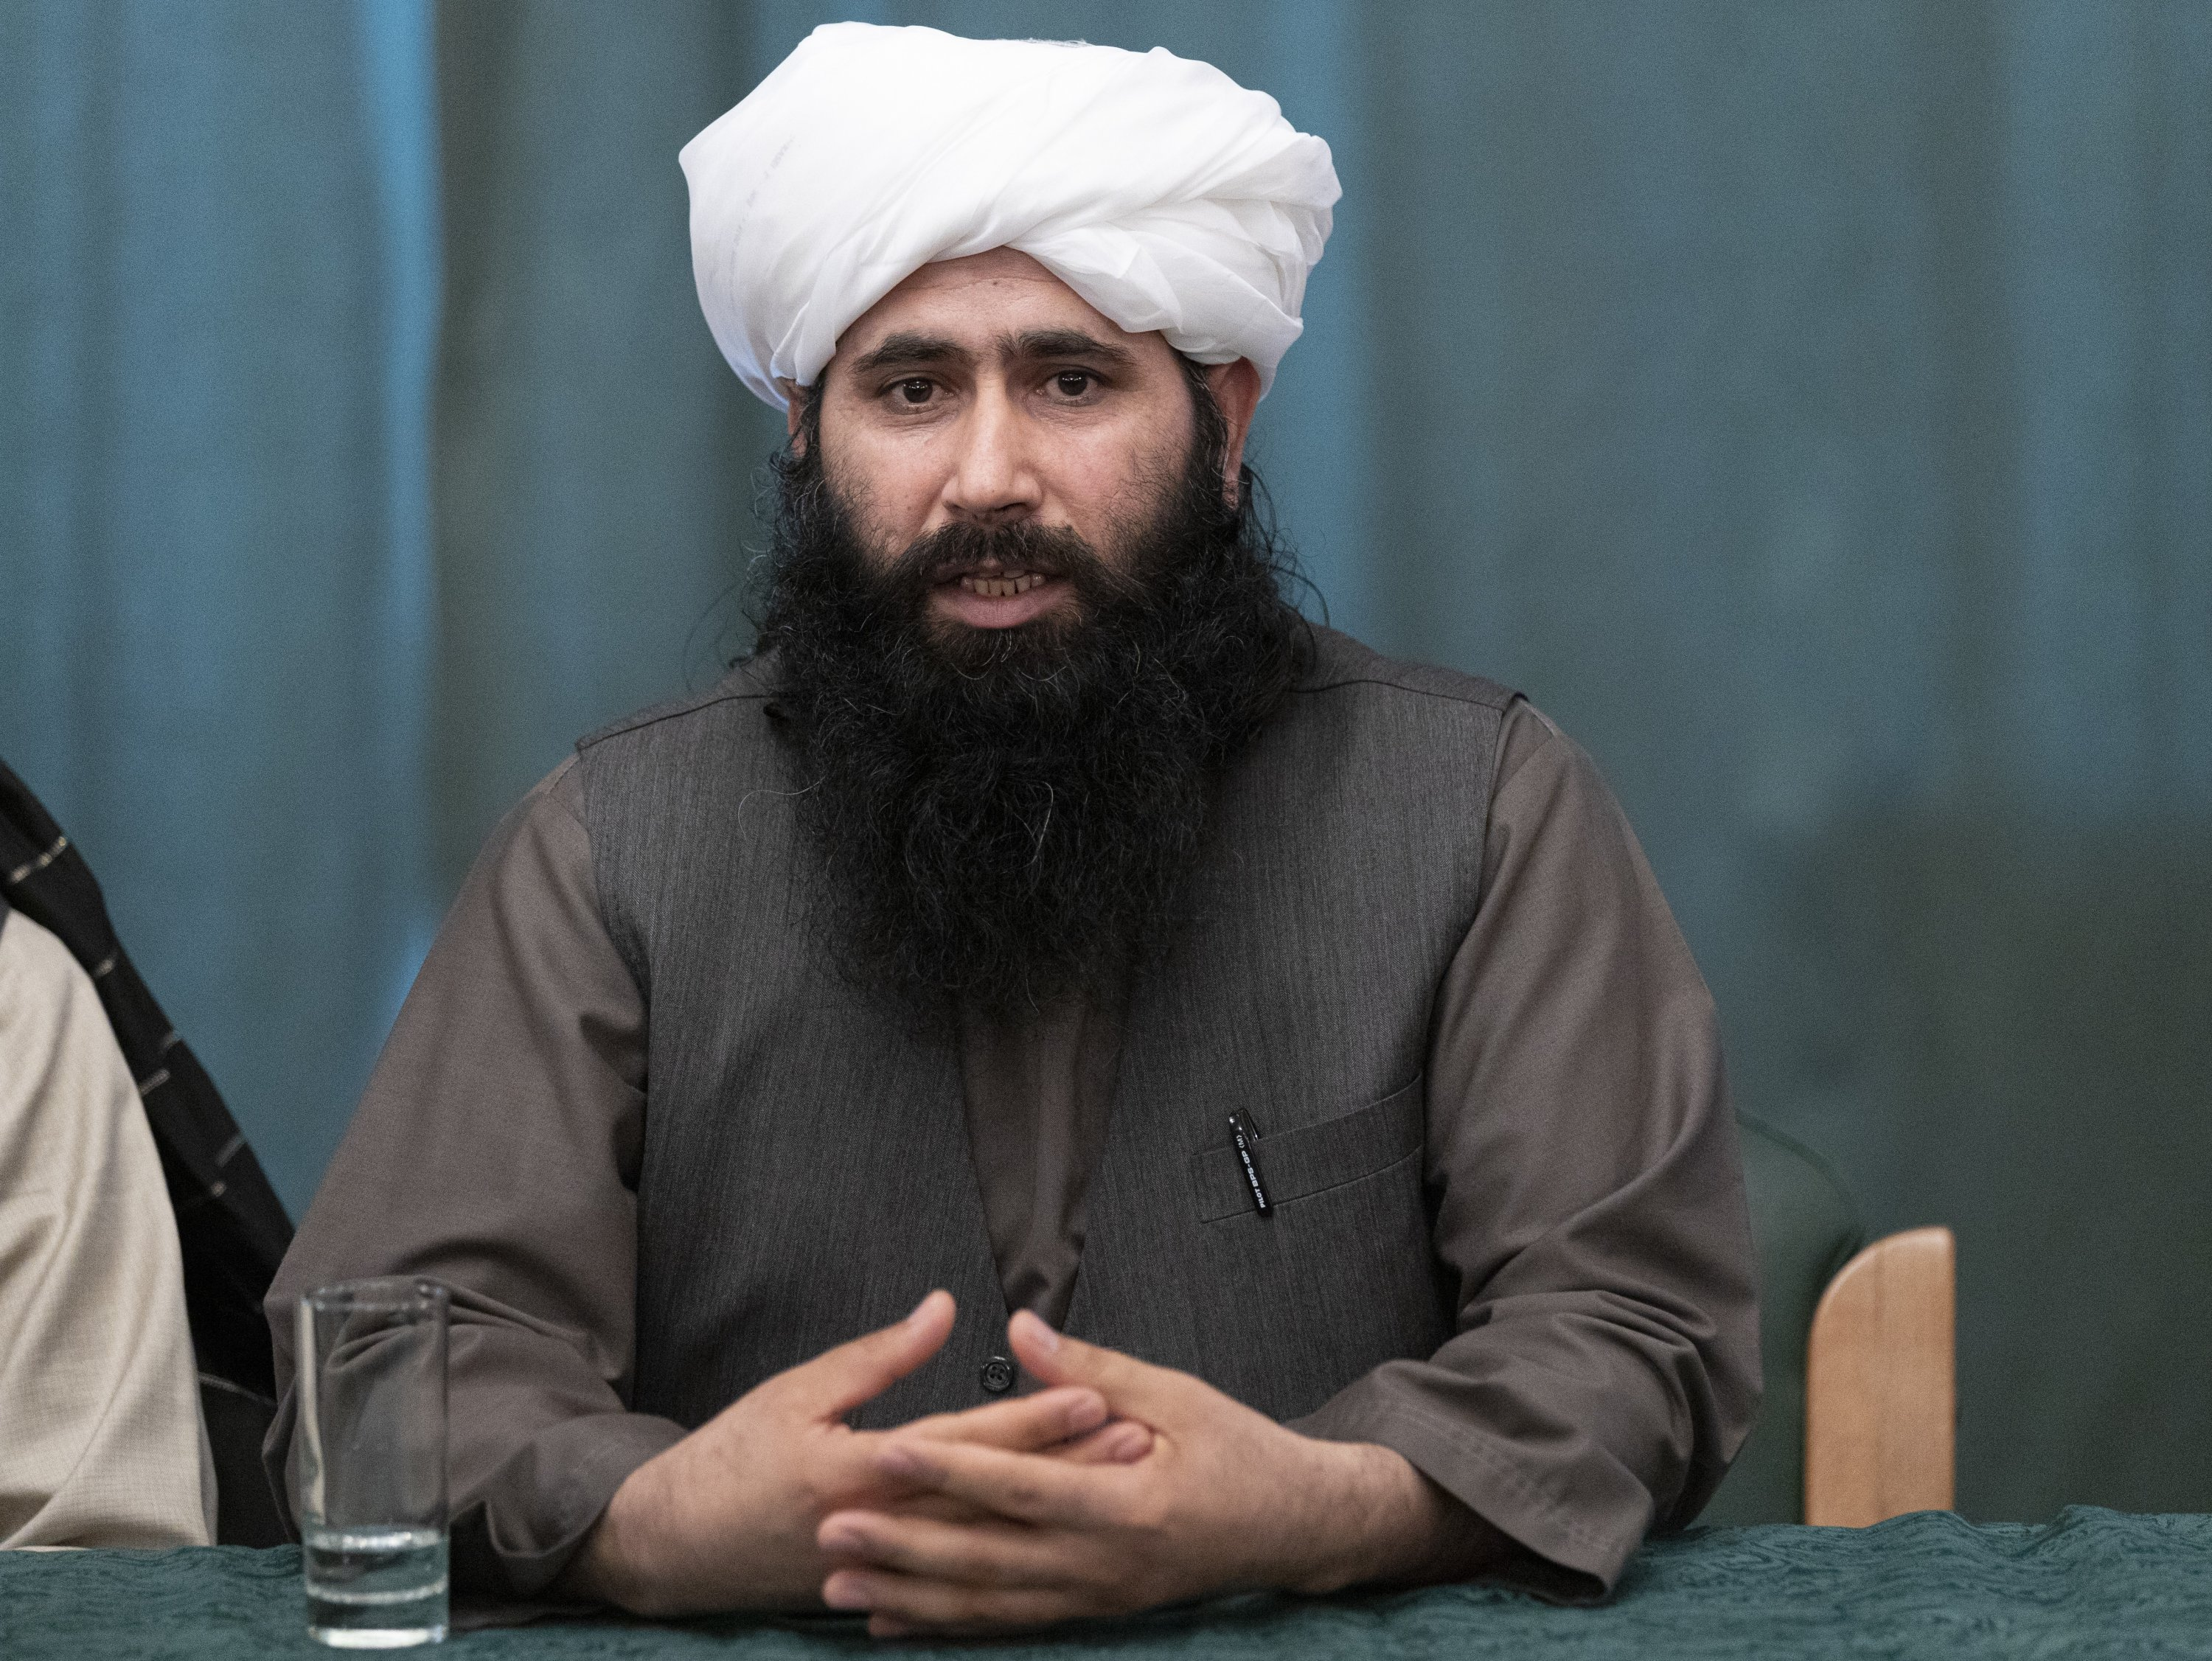 Spokesperson for the Taliban's political office Mohammad Naeem speaksduring a news conference in Moscow, Russia, March 19, 2021.(AP Photo)